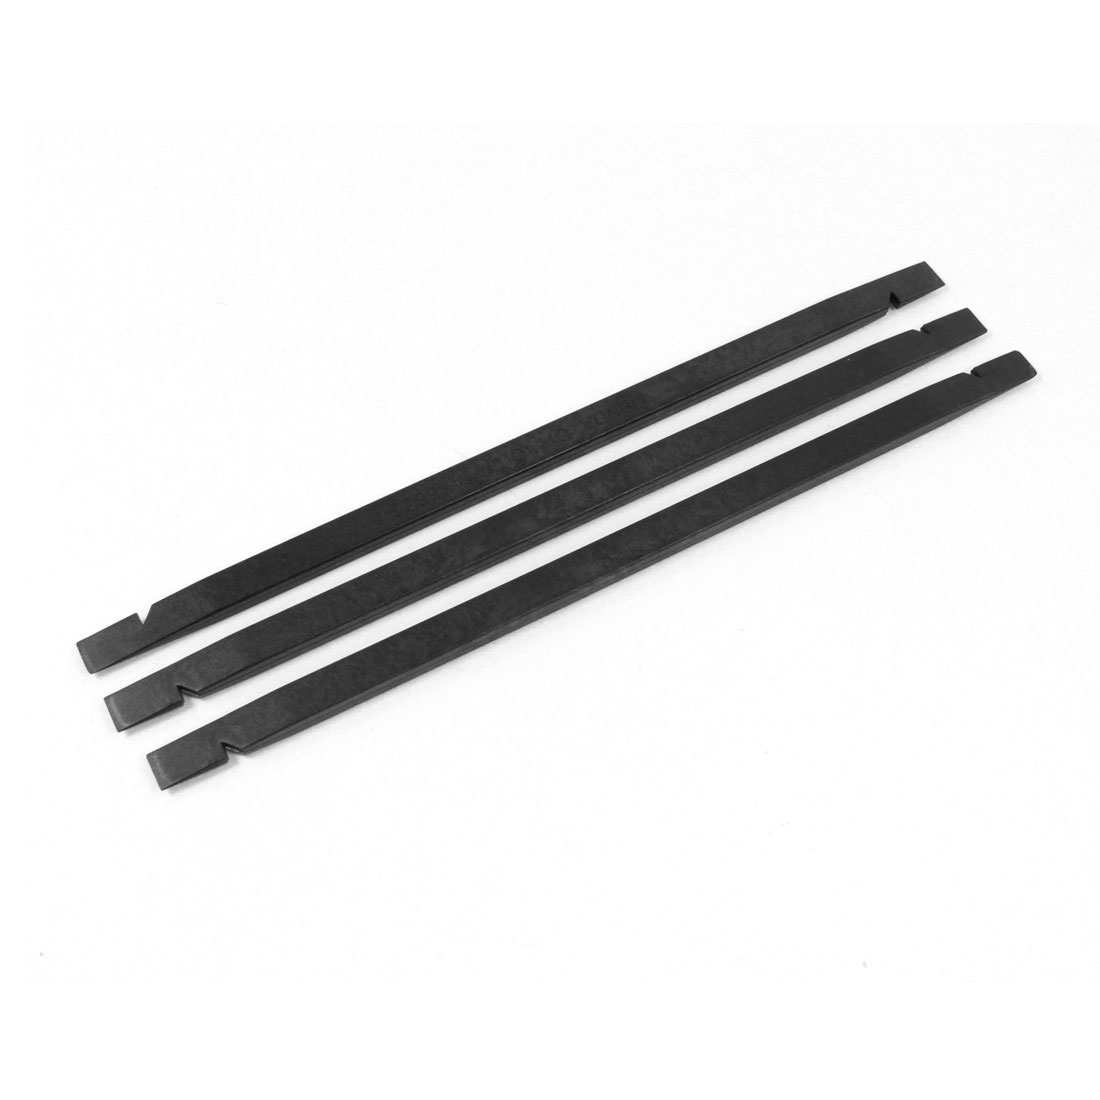 Mobile Phone Black Plastic Flat Tip Stick Opening Repair Tool 3Pcs